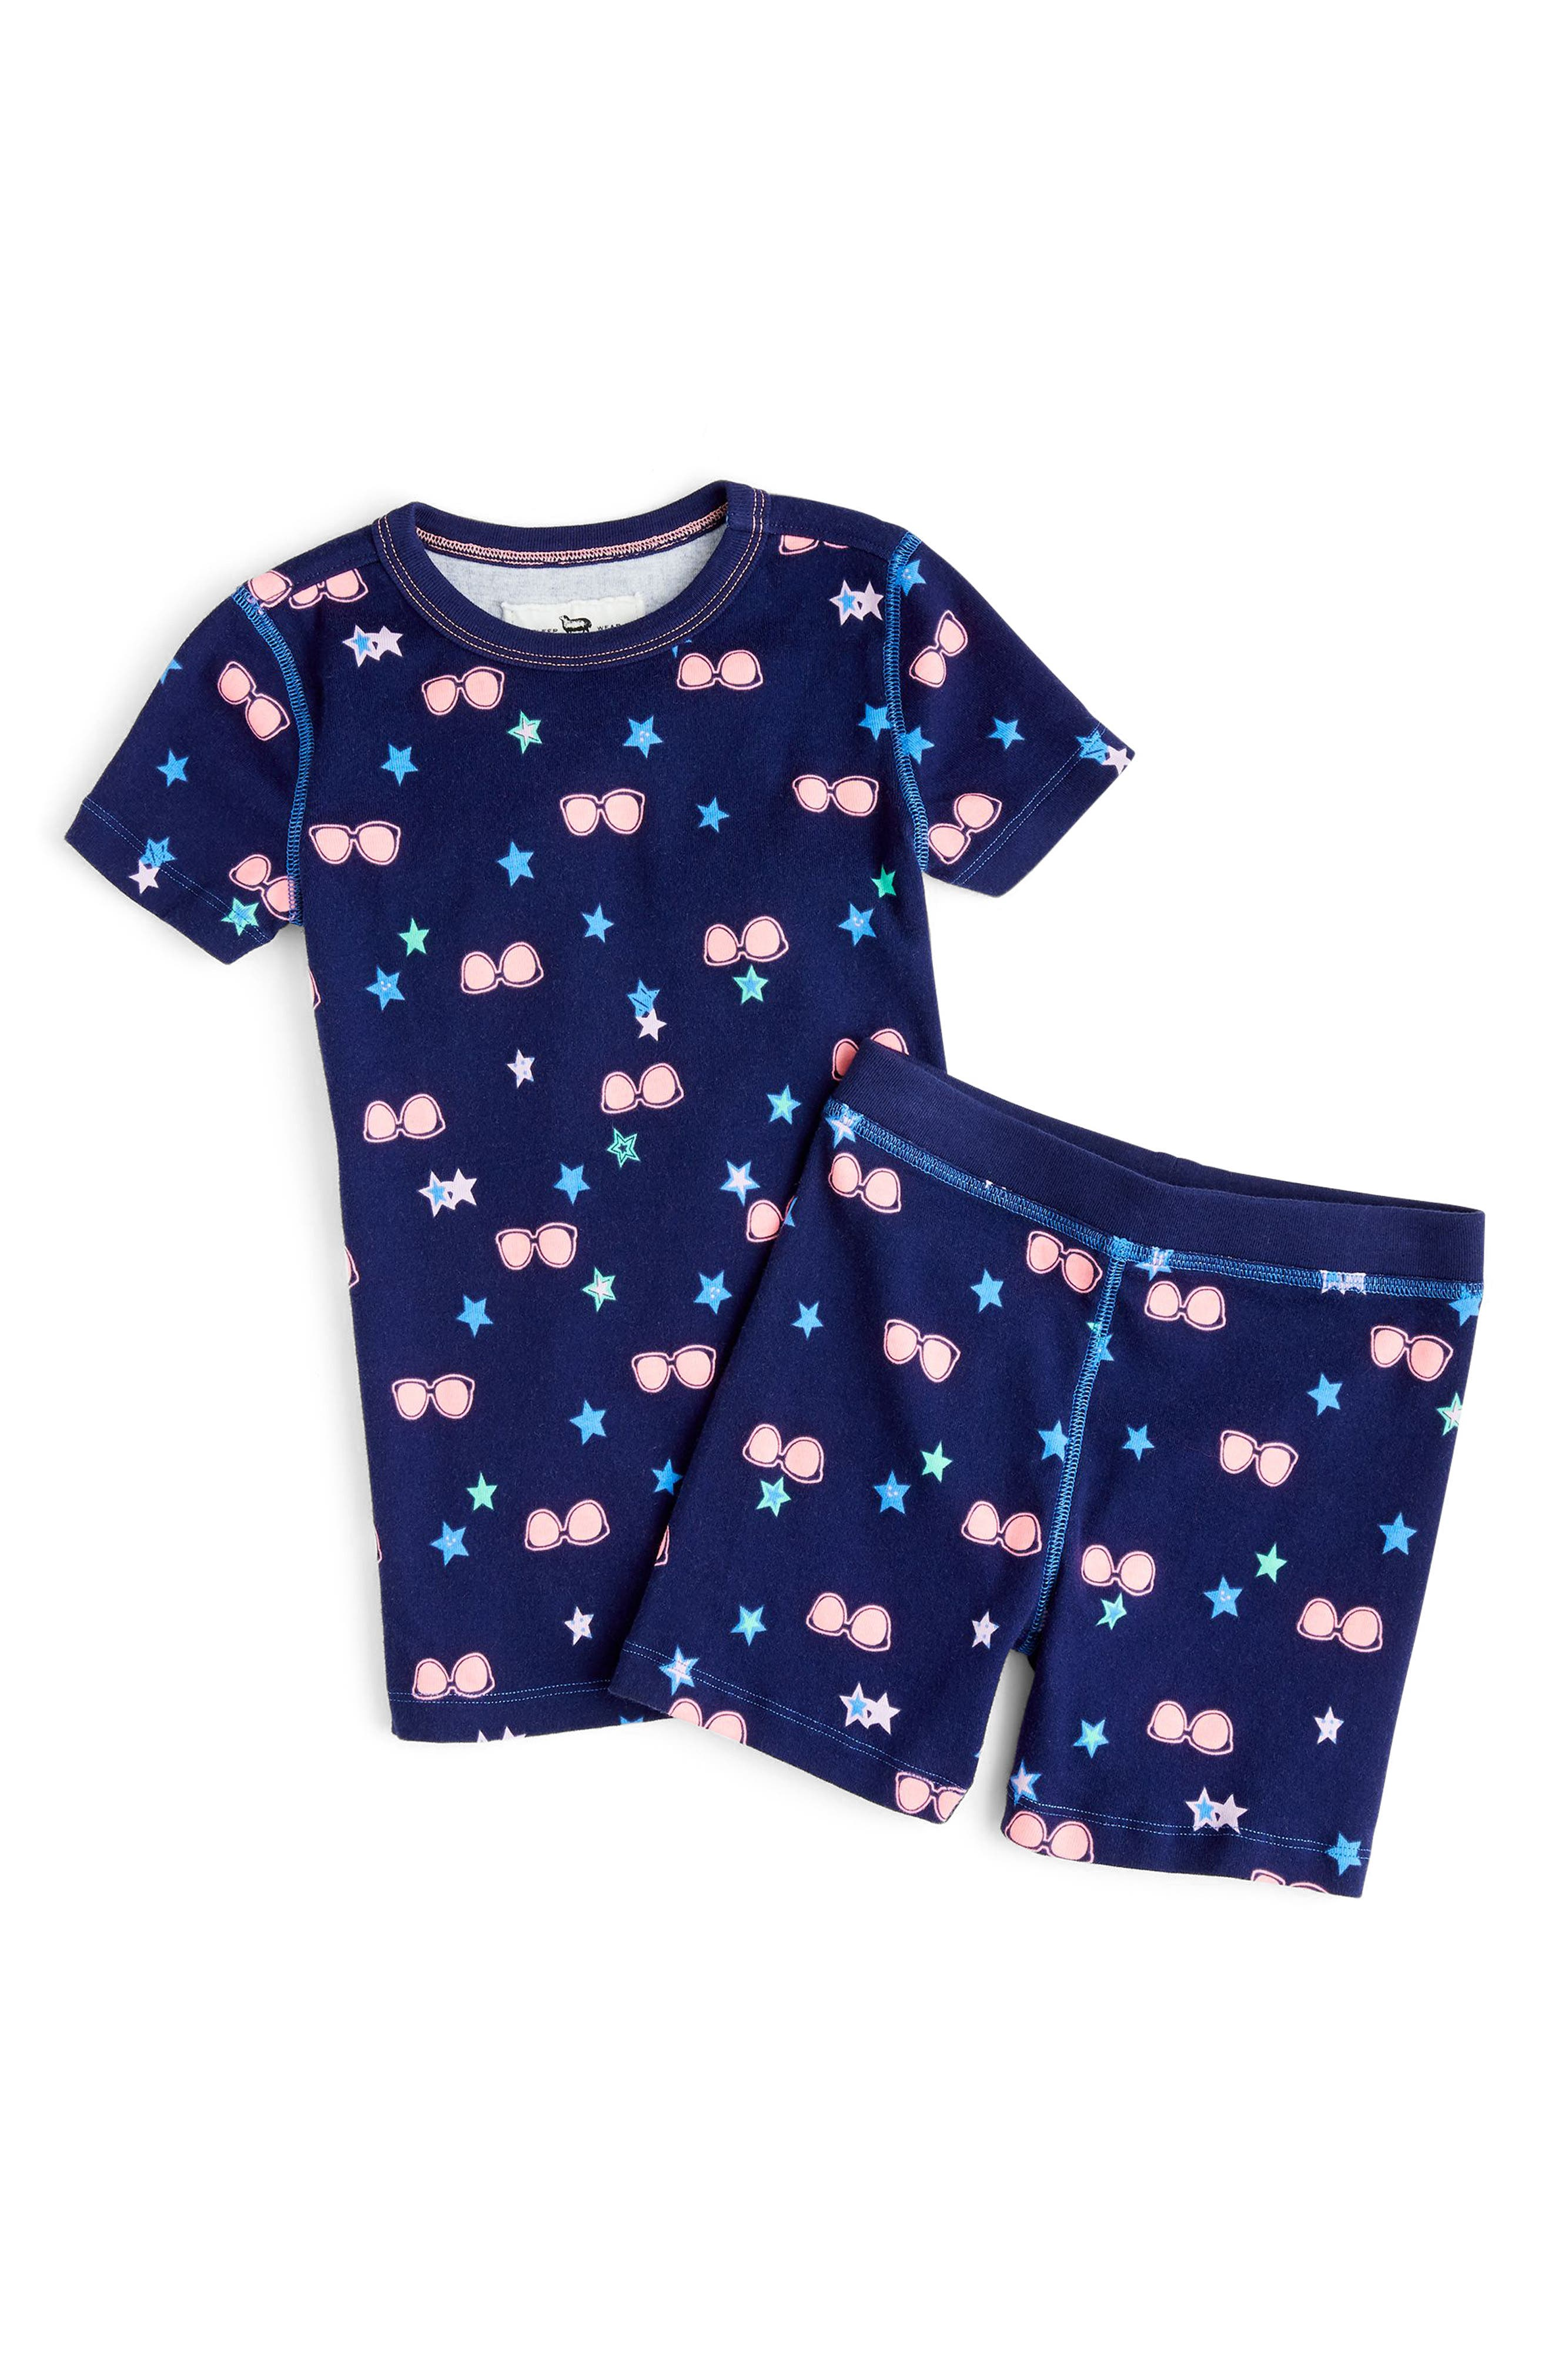 crewcuts by J. Crew Fitted Two-Piece Pajamas (Toddler Girls, Little Girls & Big Girls)